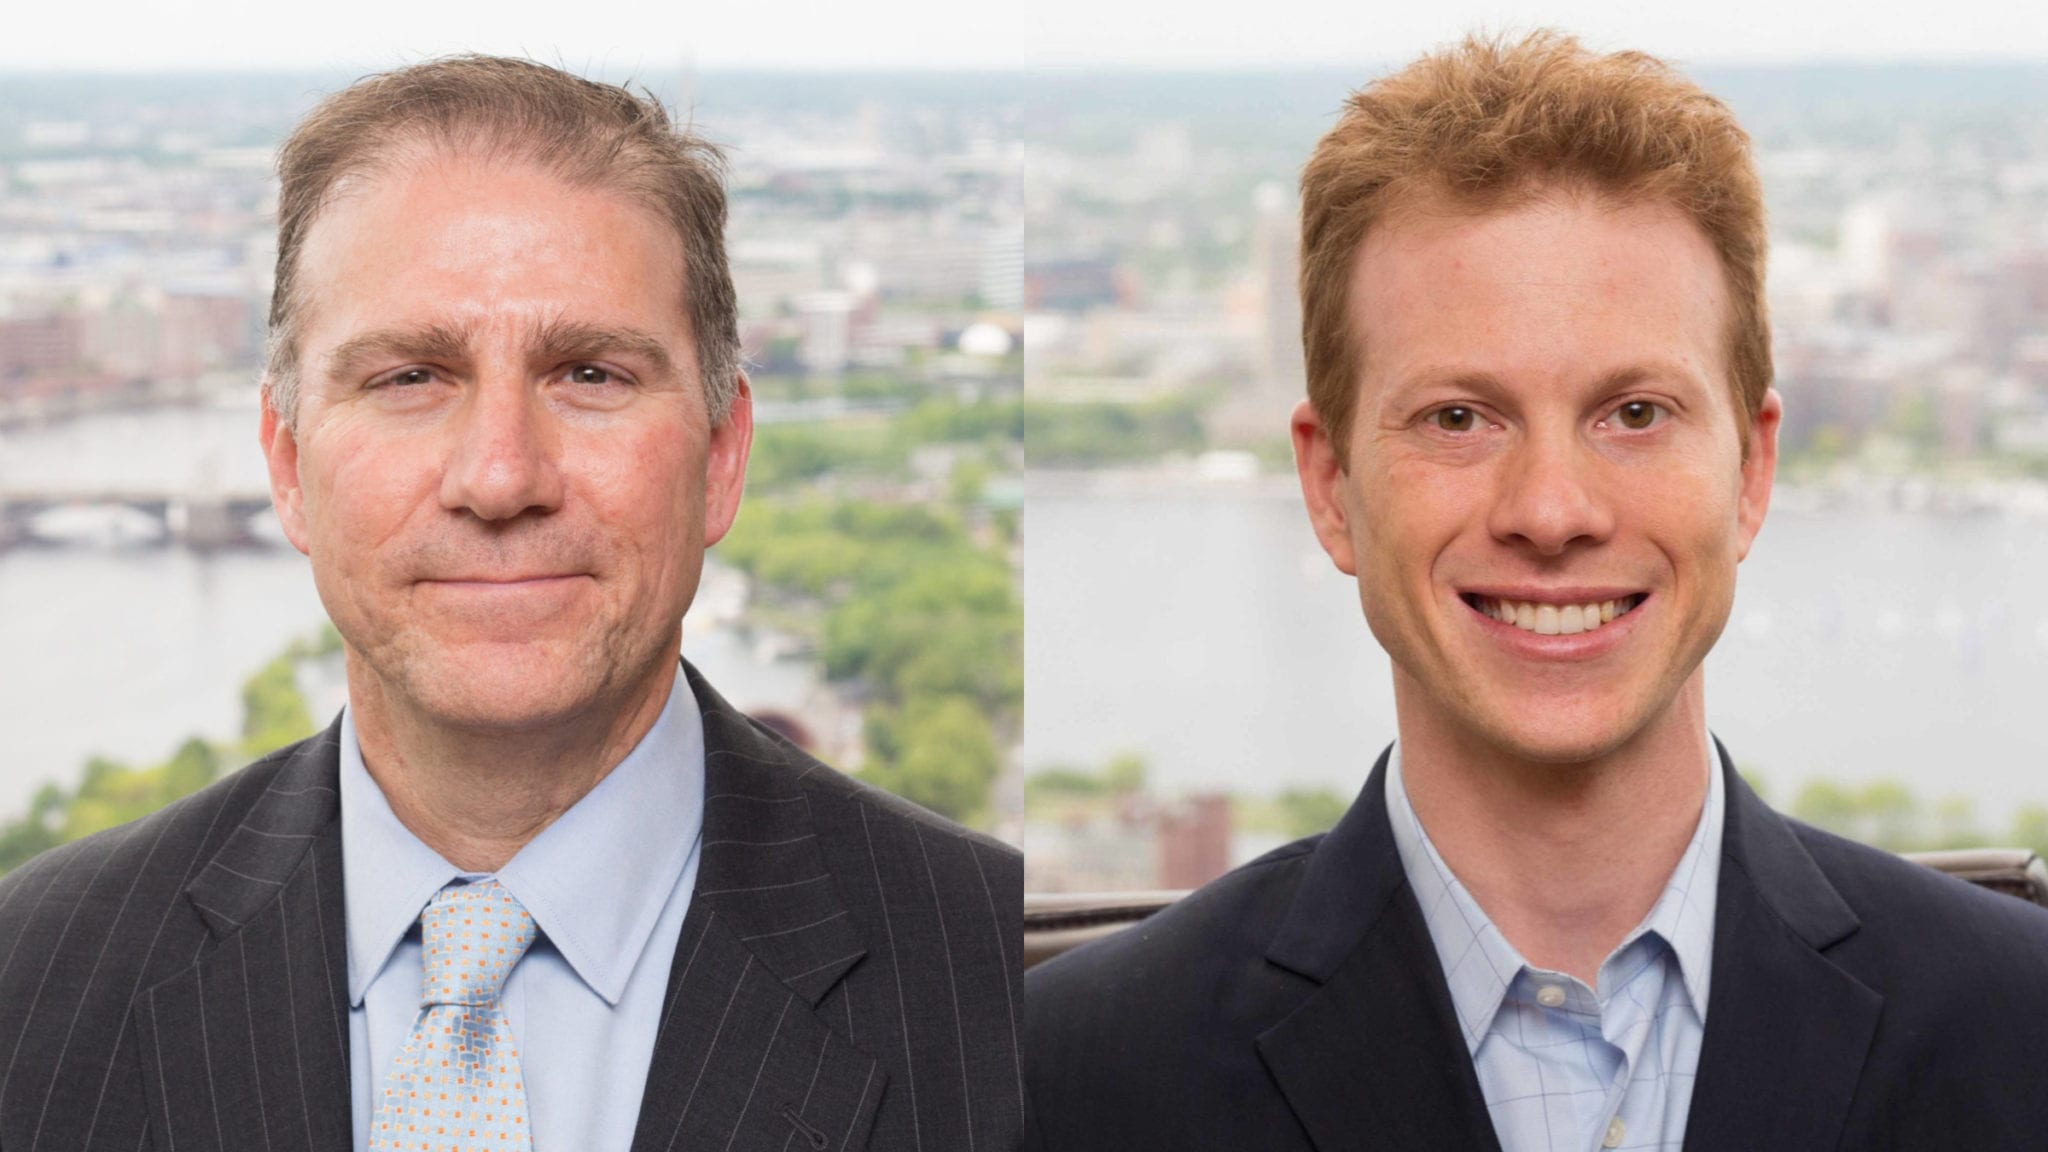 Bain execs Adam Koppel and Jeffrey Schwartz line up $125M for their first blank check deal as Wall Street continues to embrace biotech